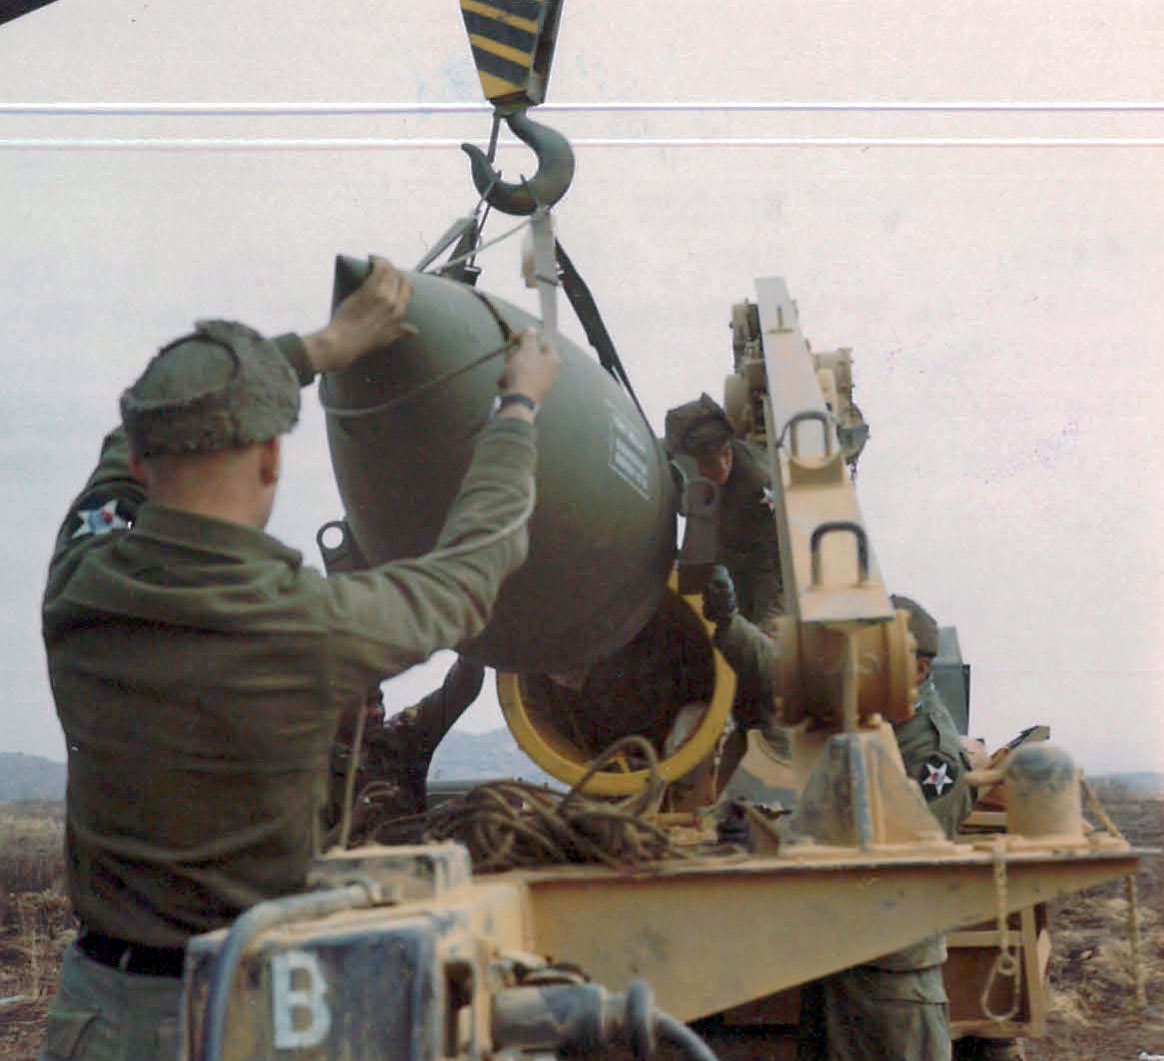 Members of the Headquarters Battery, 1st Battalion, 12th Artillery, 2nd Infantry Division hoisting the warhead section